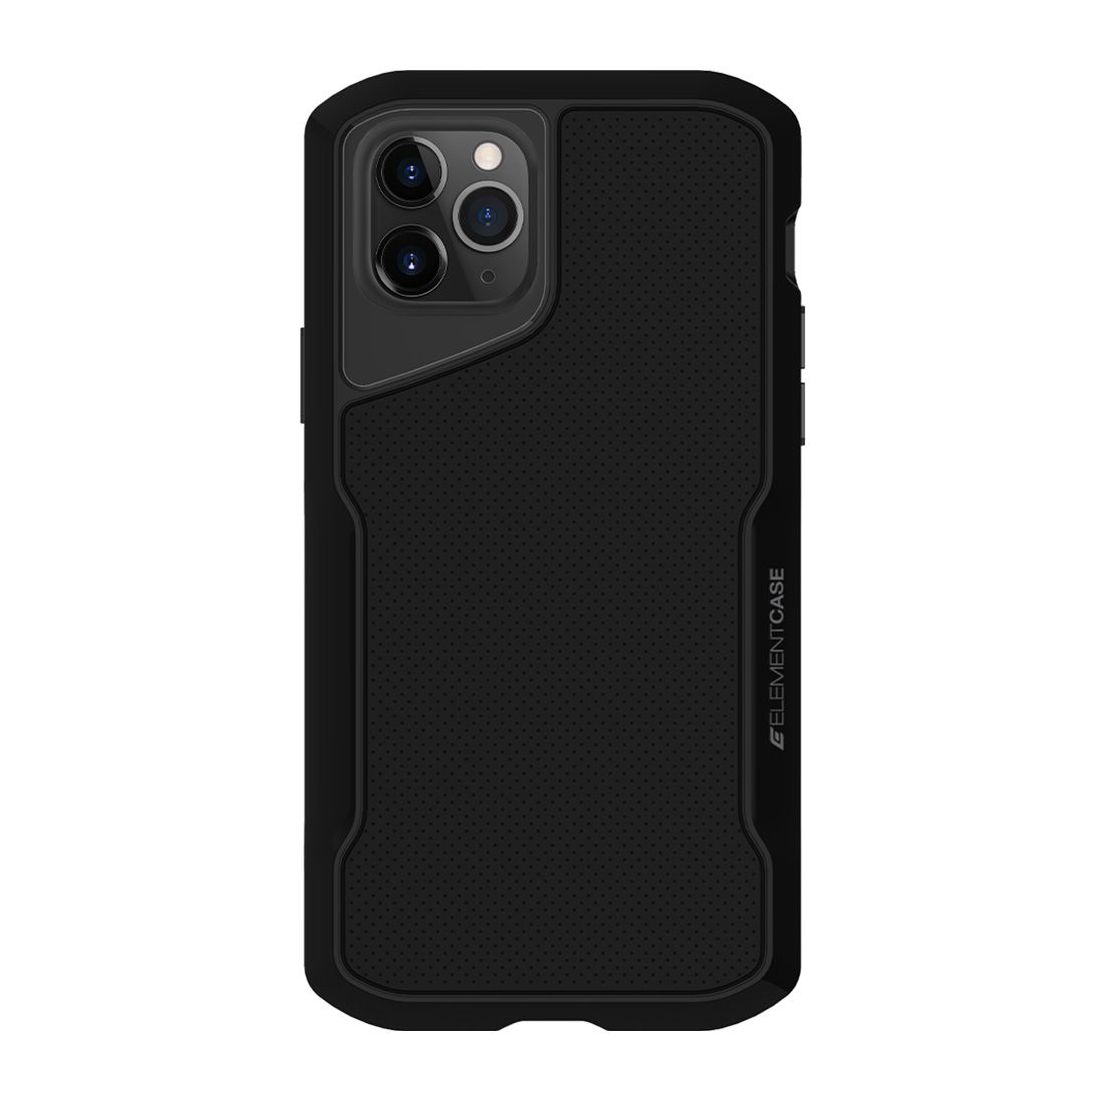 Element Case Shadow Black for iPhone 11 Pro Max